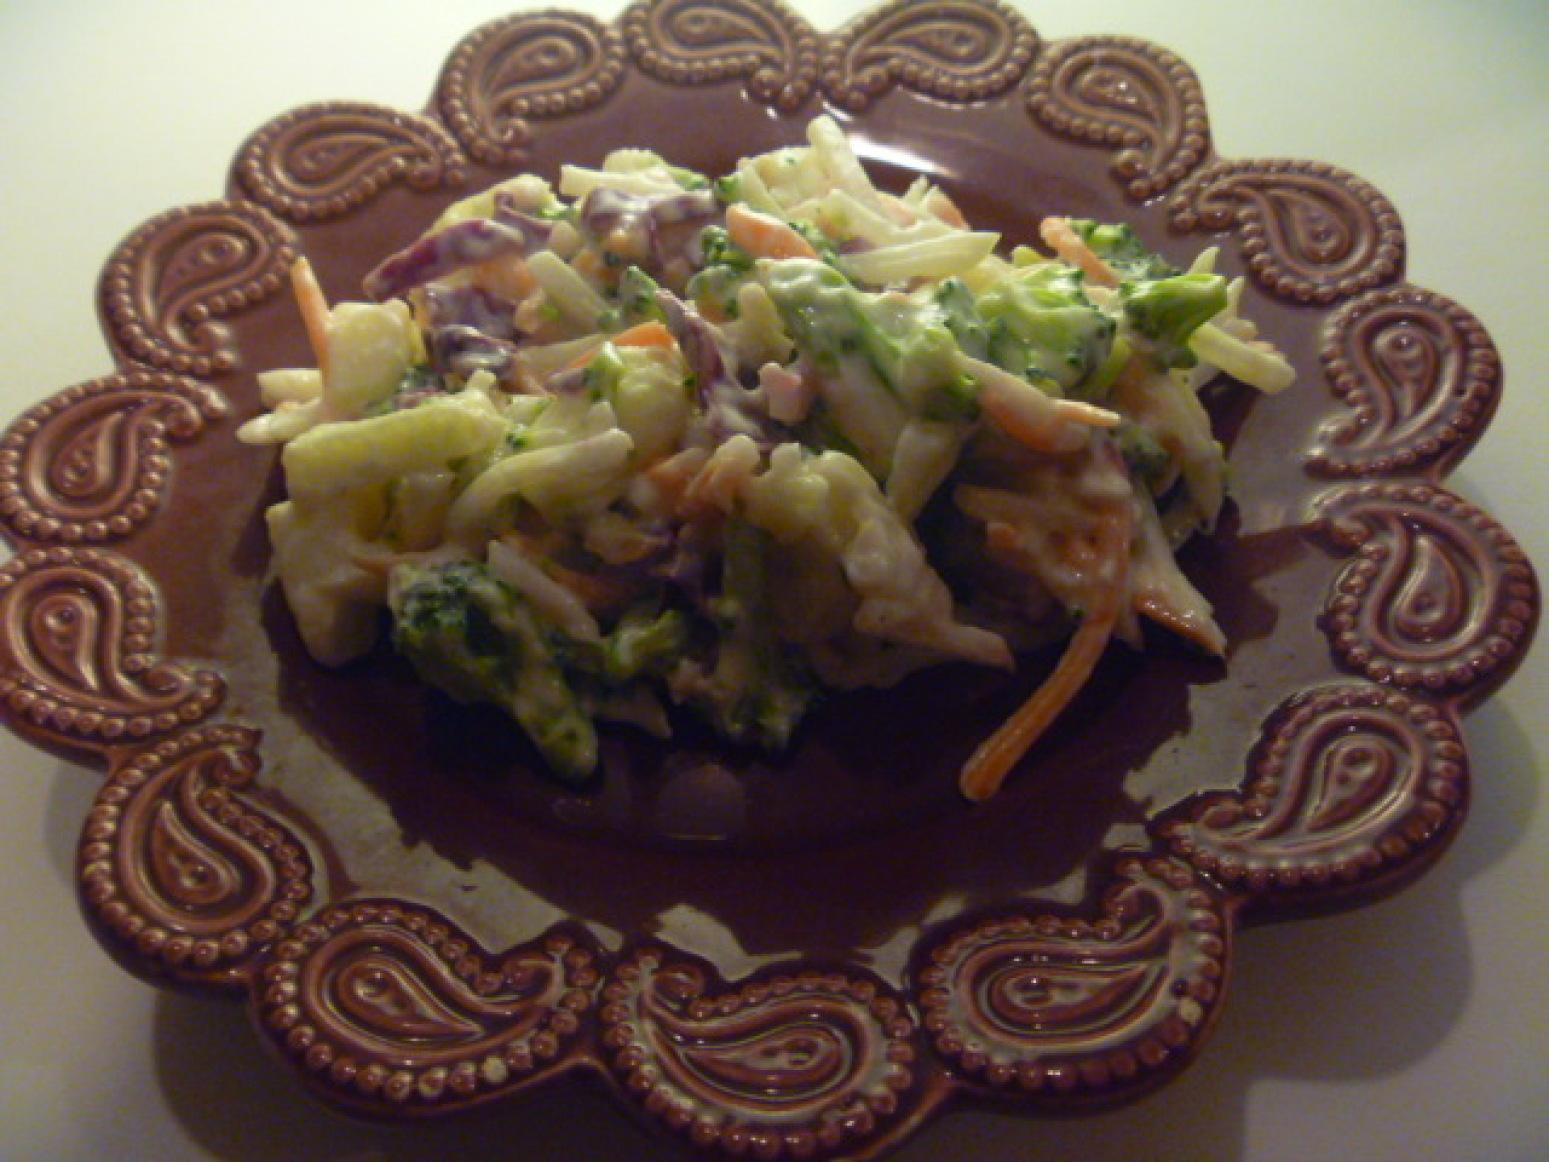 Kim's Coleslaw Broccoli style Recipe